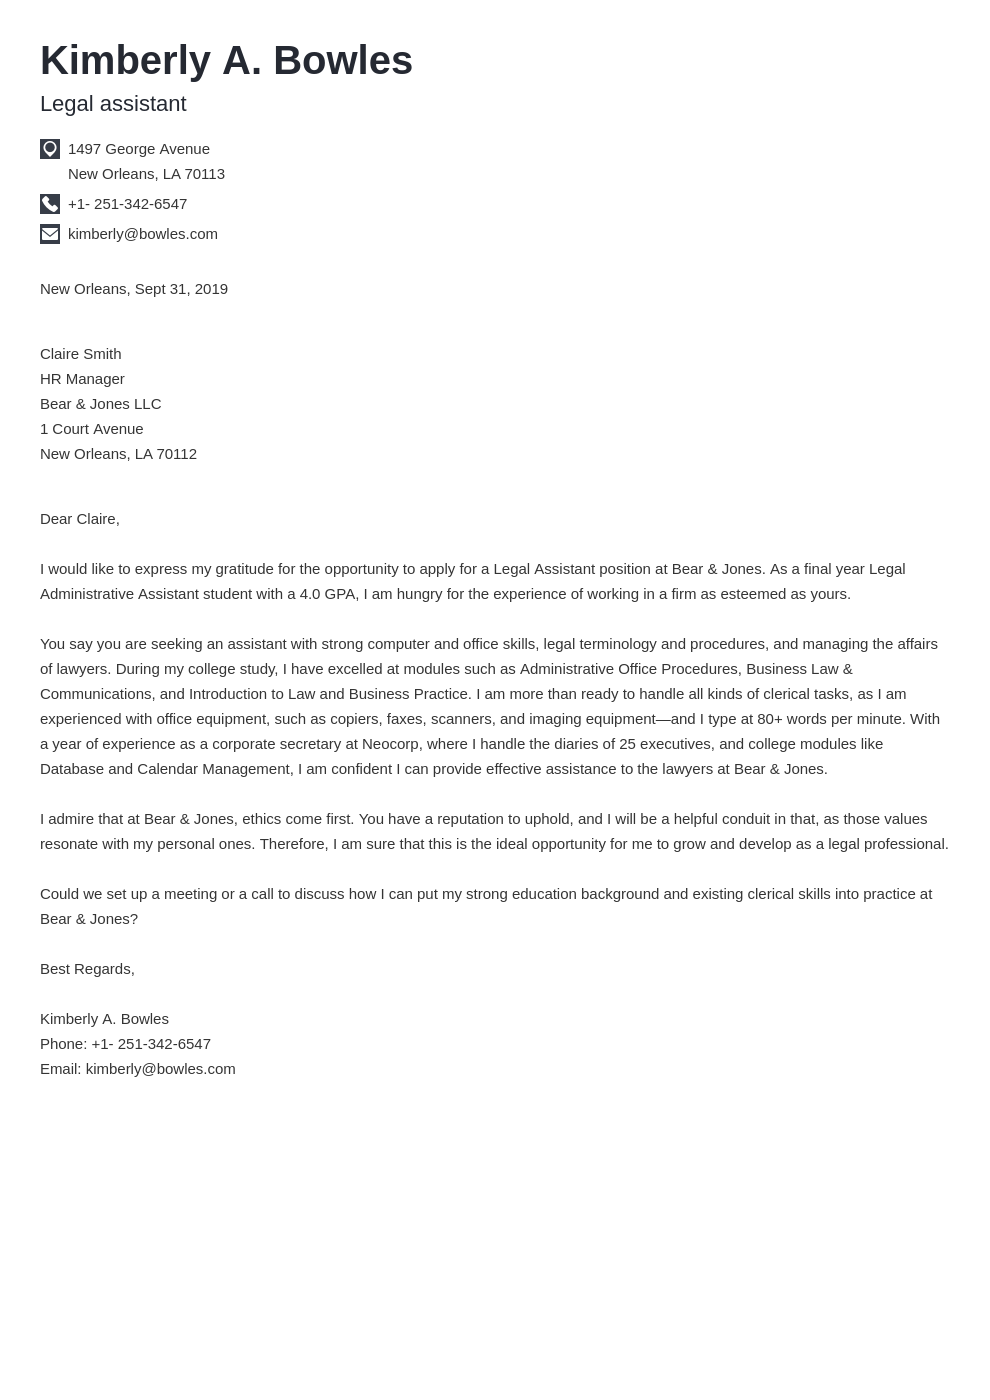 cover letter examples legal assistant template iconic uk